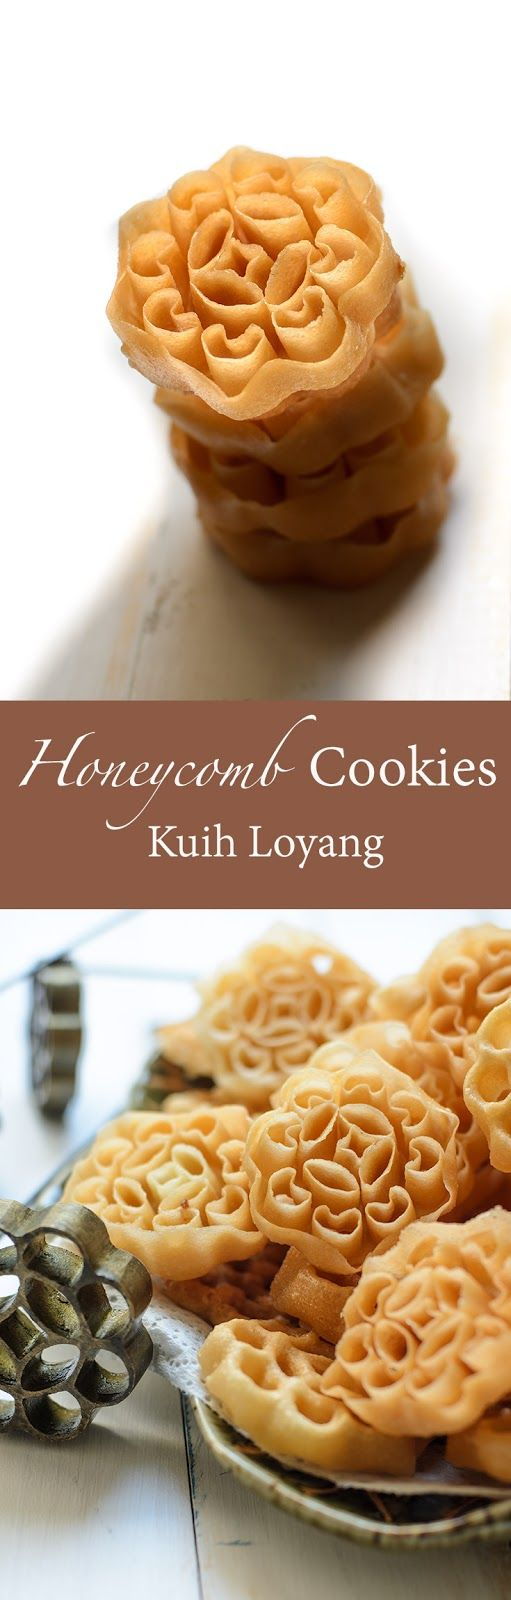 Honeycomb cookies also known as rose cookies, beehive cookies or kuih loyang (in Malay) is not actually cookies!